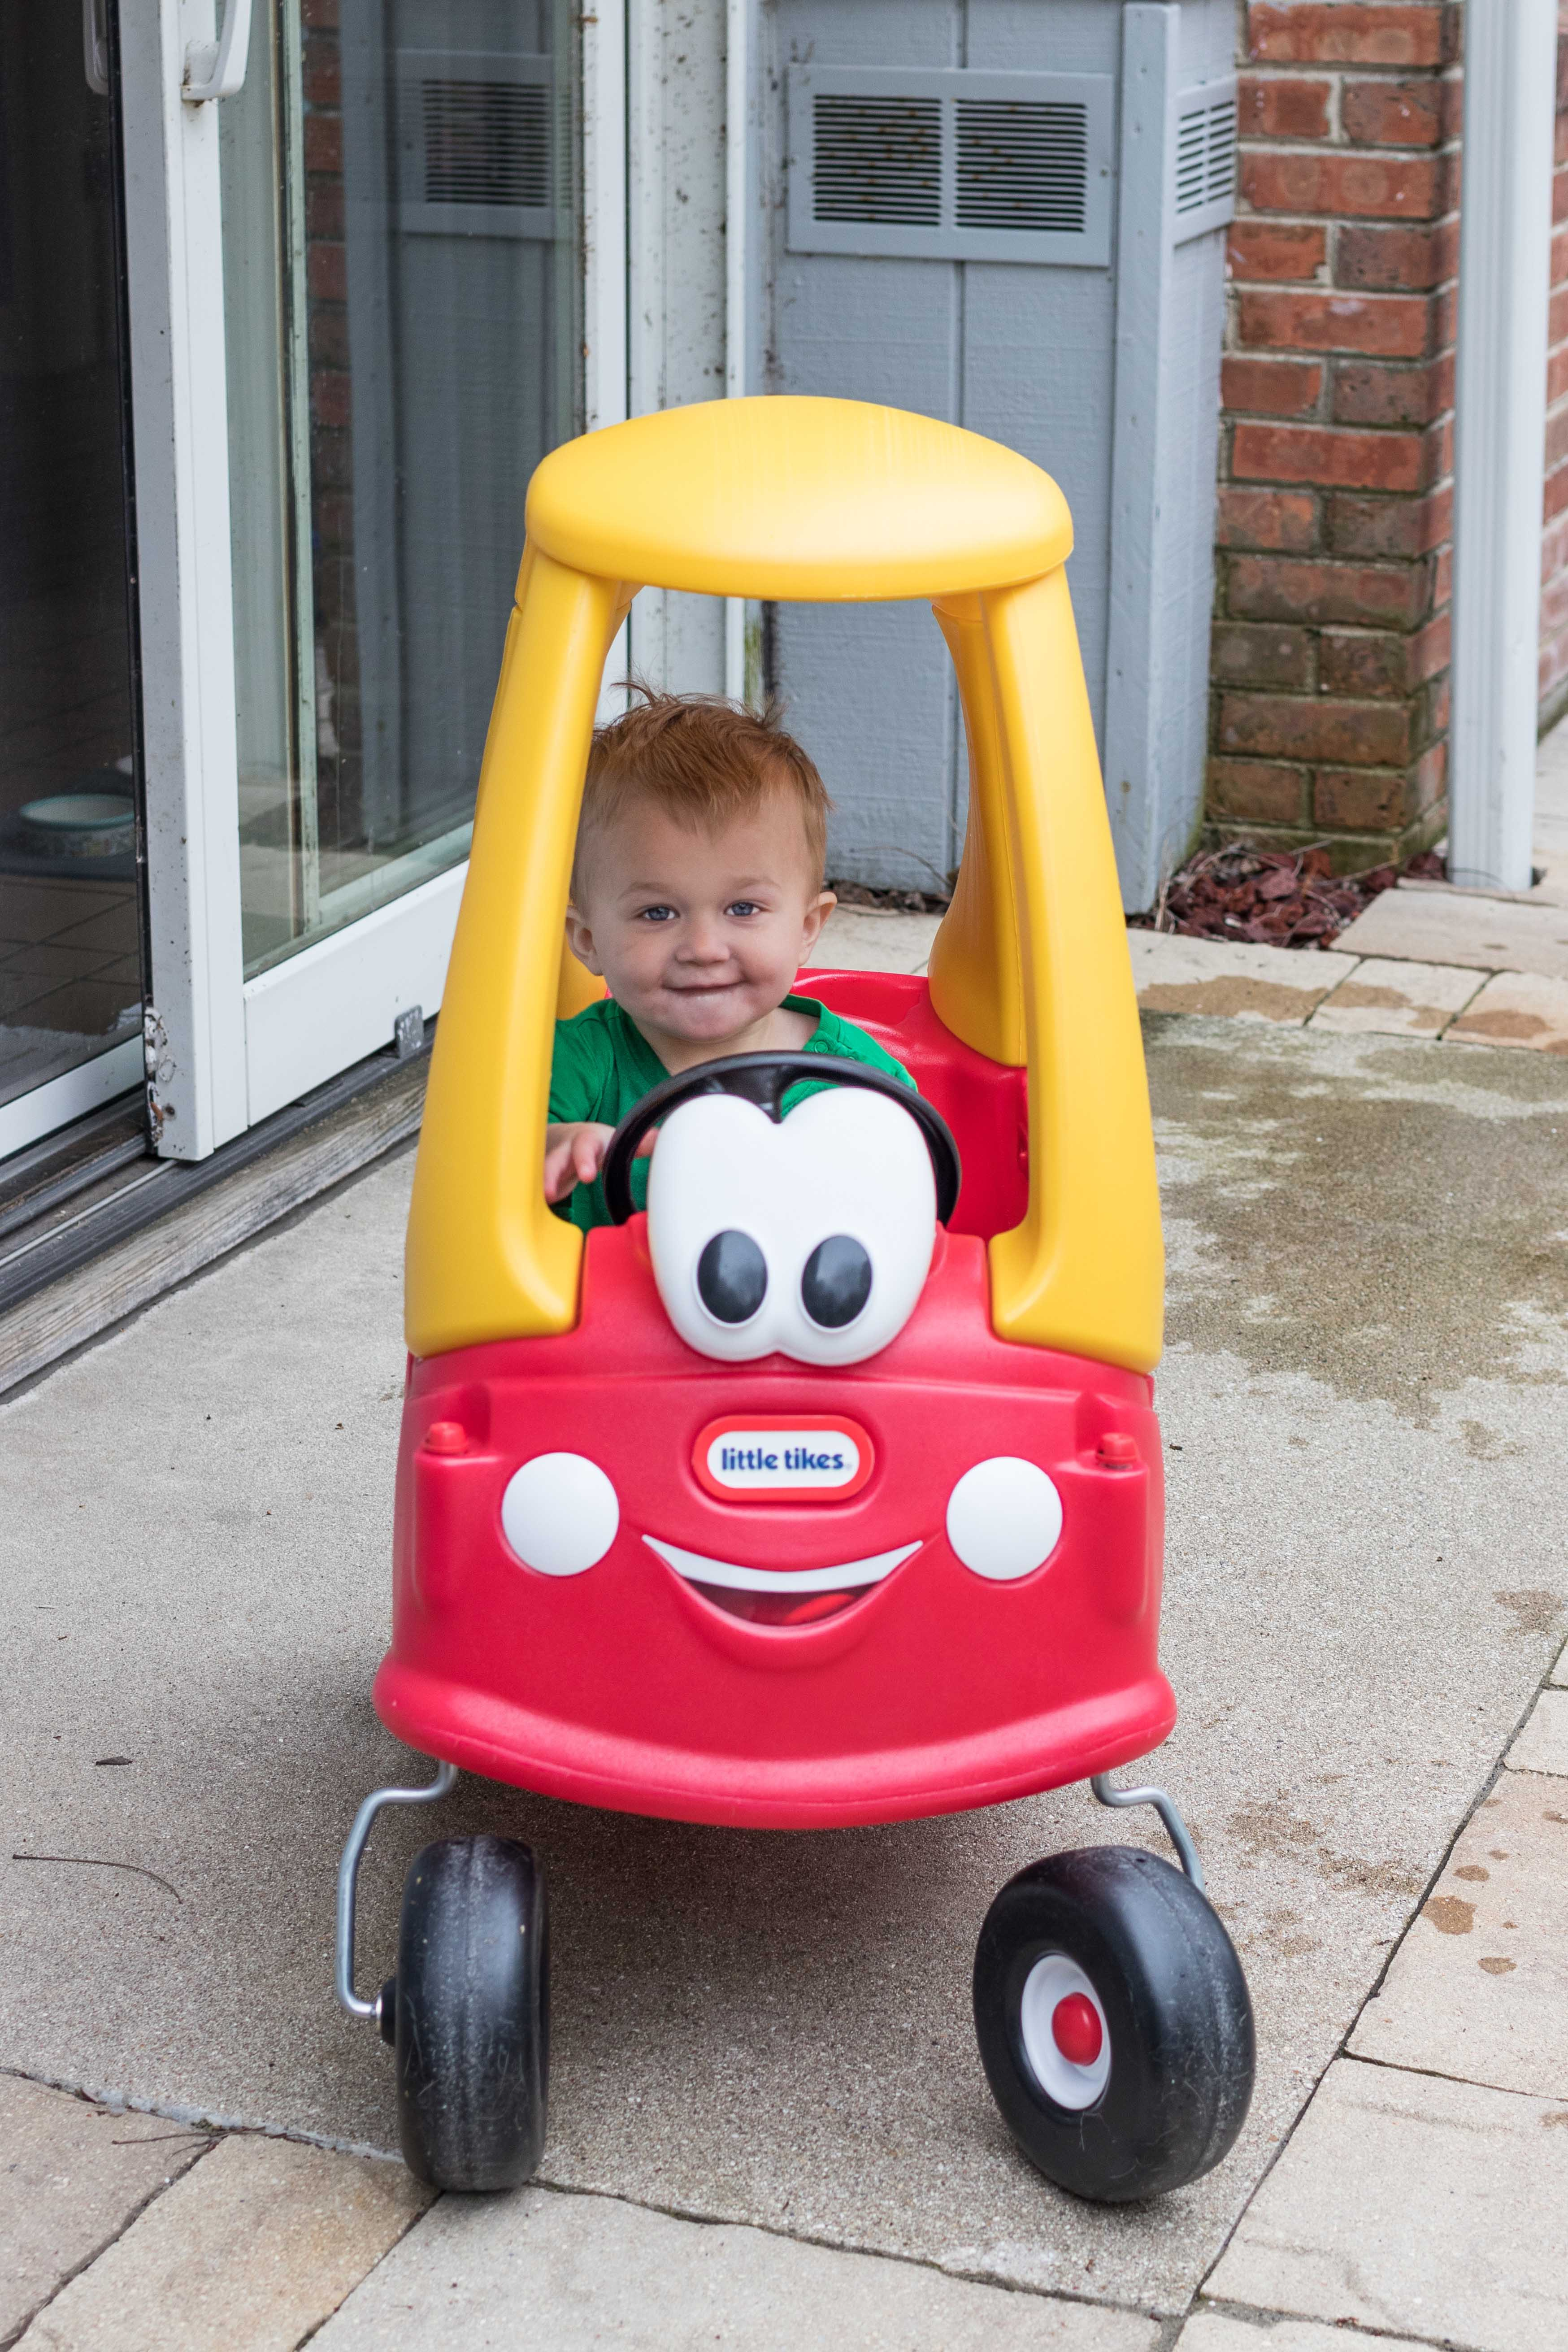 The classic Cozy Coupe is an awesome indoor or outdoor toy for high energy little ones to stay active and develop their gross motor and social skills! #CozyCoupe #besttoddlertoys #outdoortoys #toysforactivetoddlers | https://www.roseclearfield.com